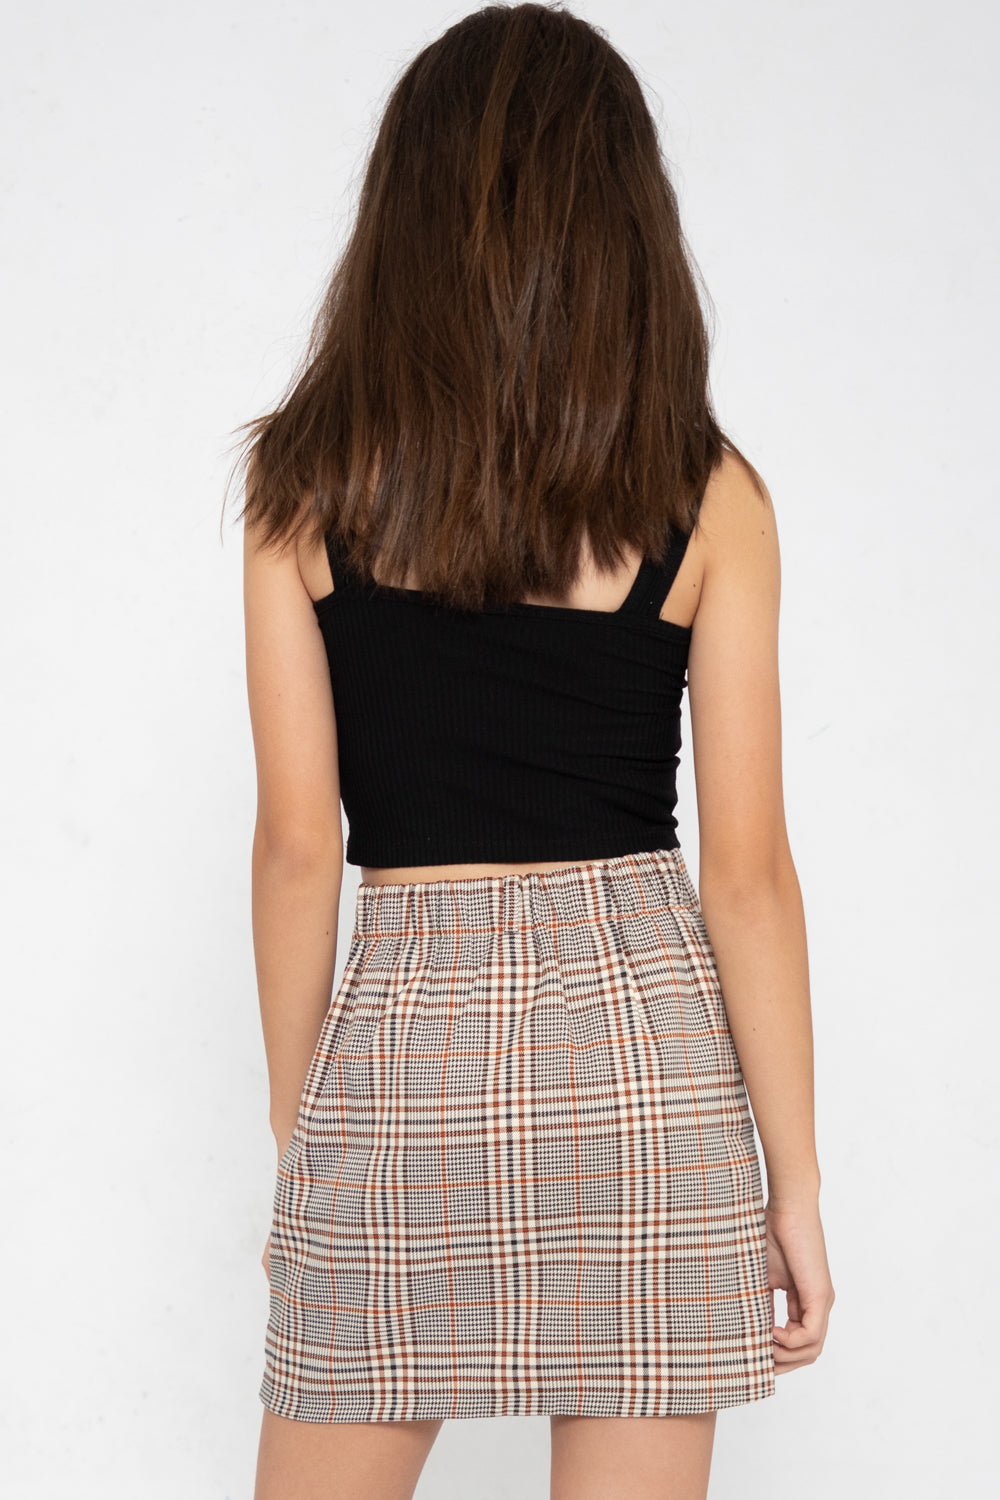 Peyton Checkered A-Line Wrap Skorts in Orange Plaids - Three One Duo